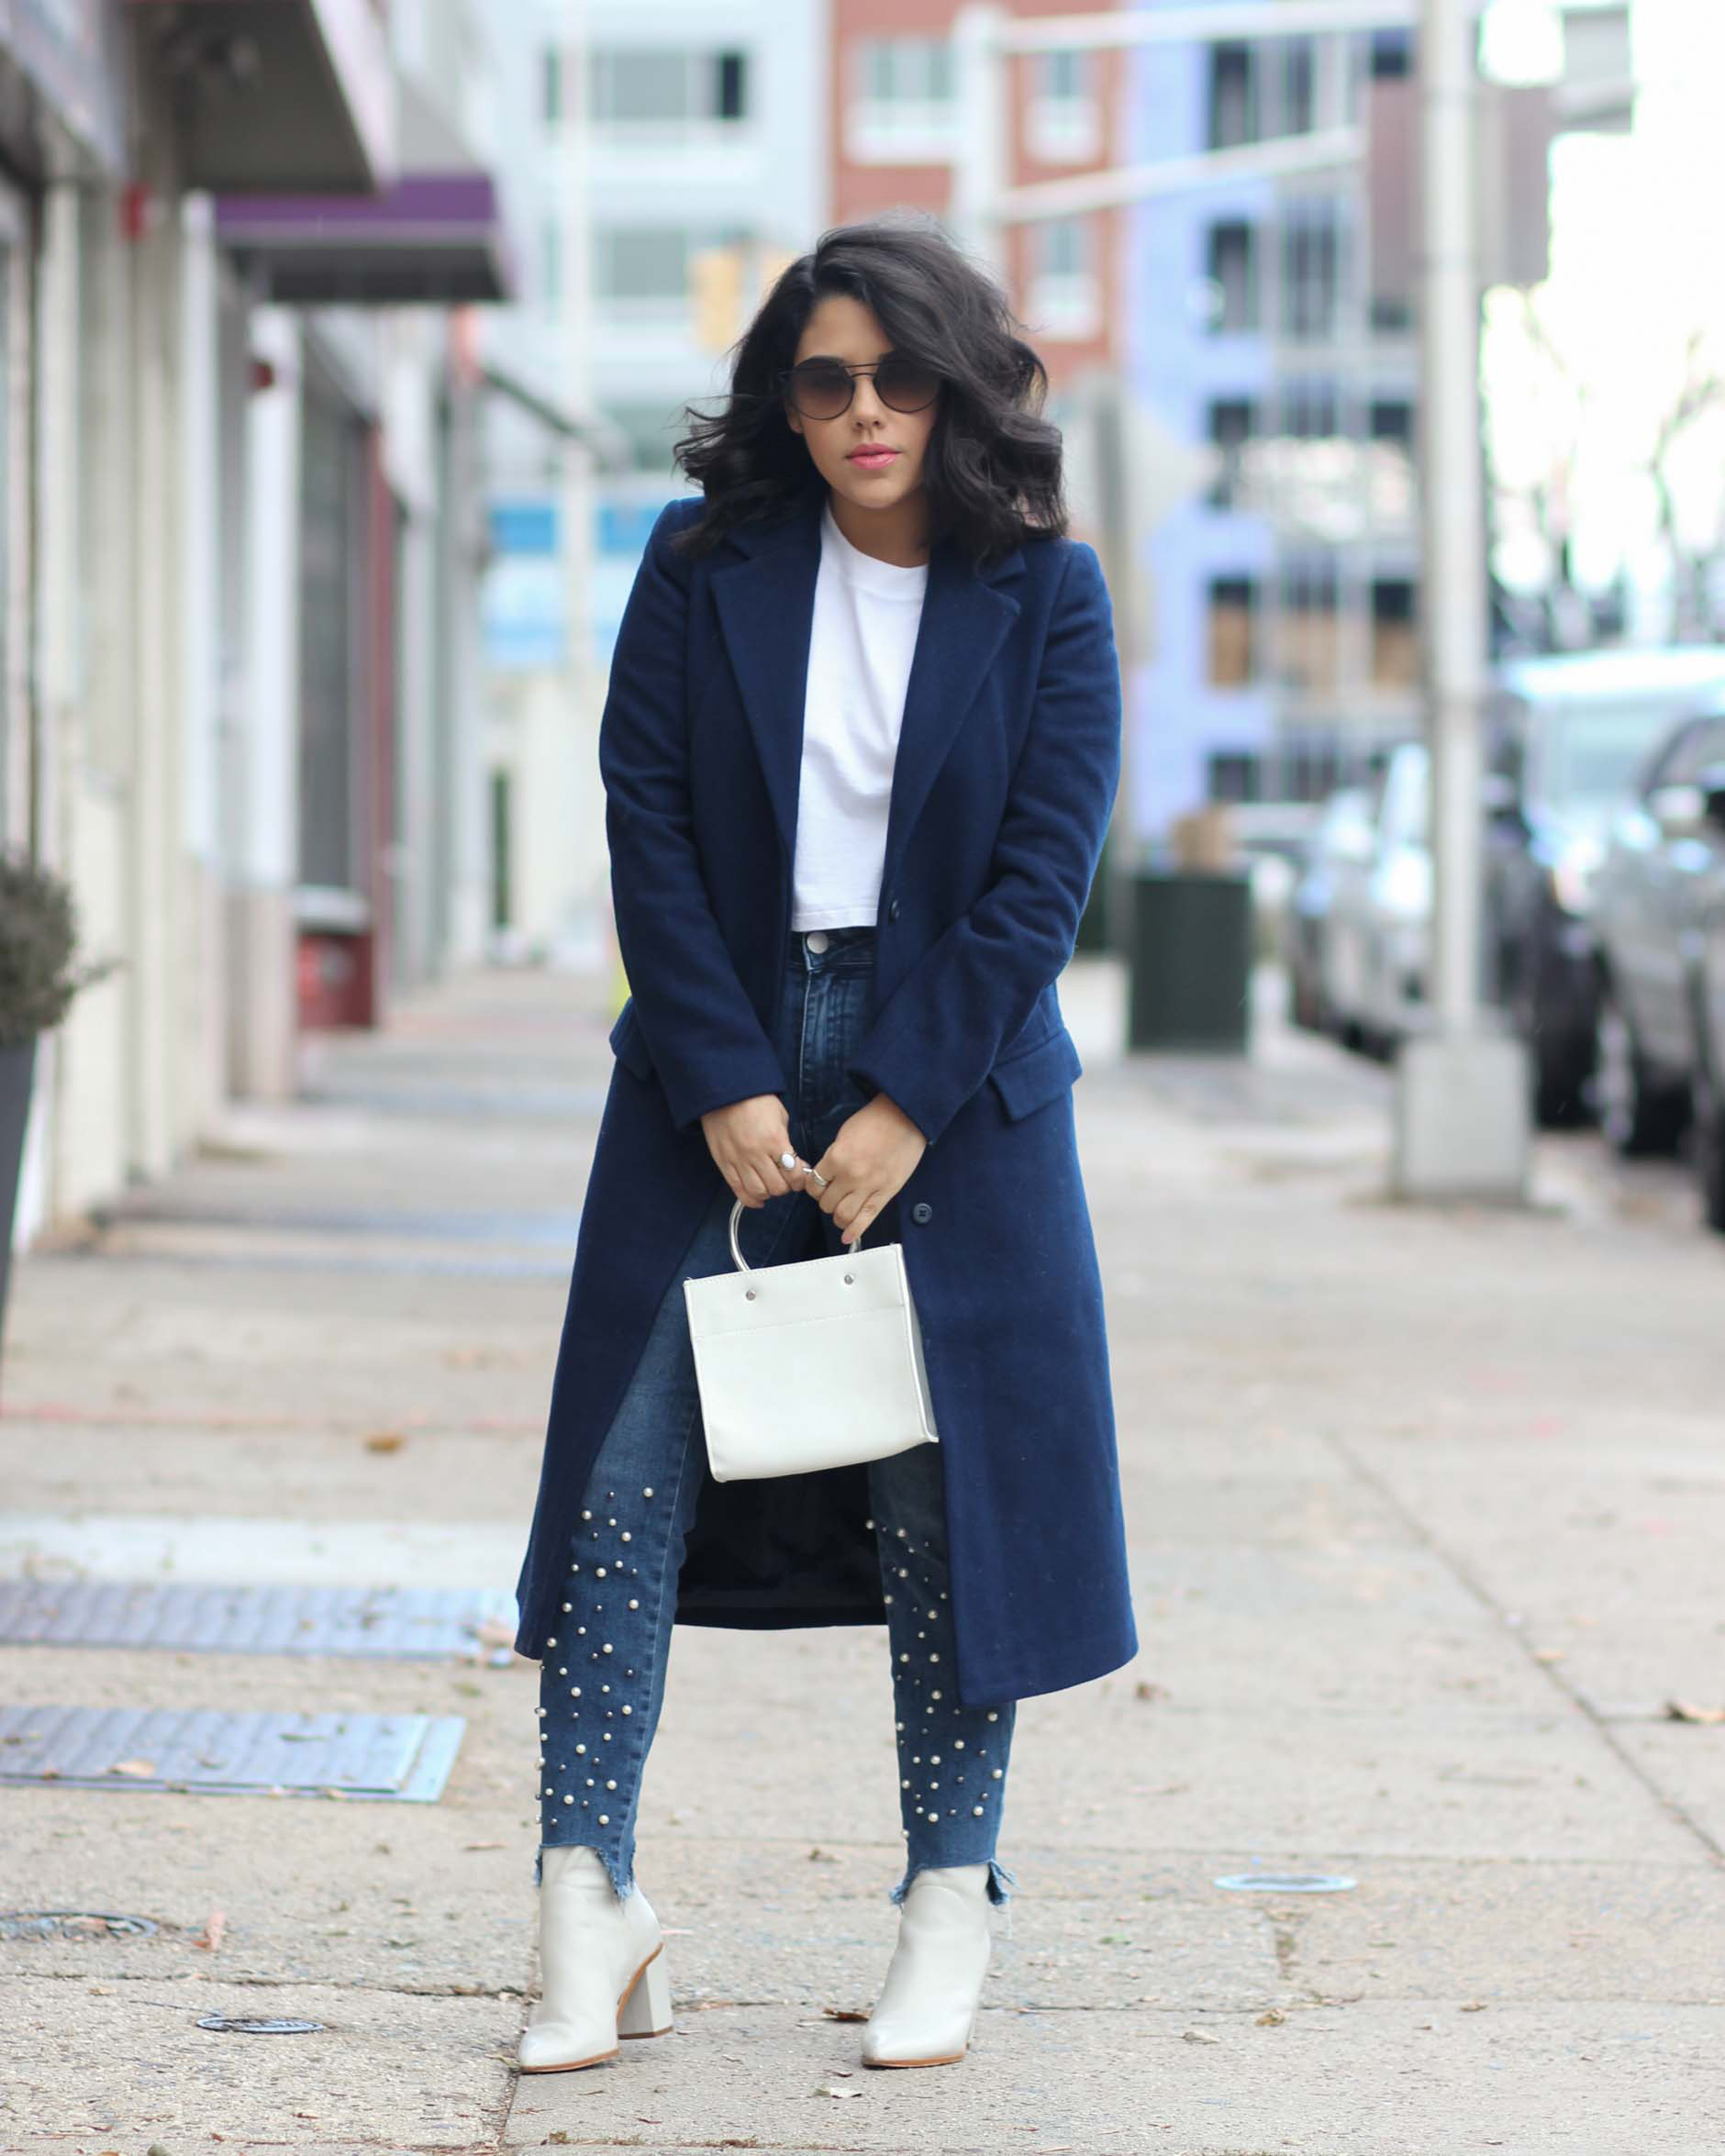 lifestyle blogger naty michele wearing a navy coat and pearl jeans